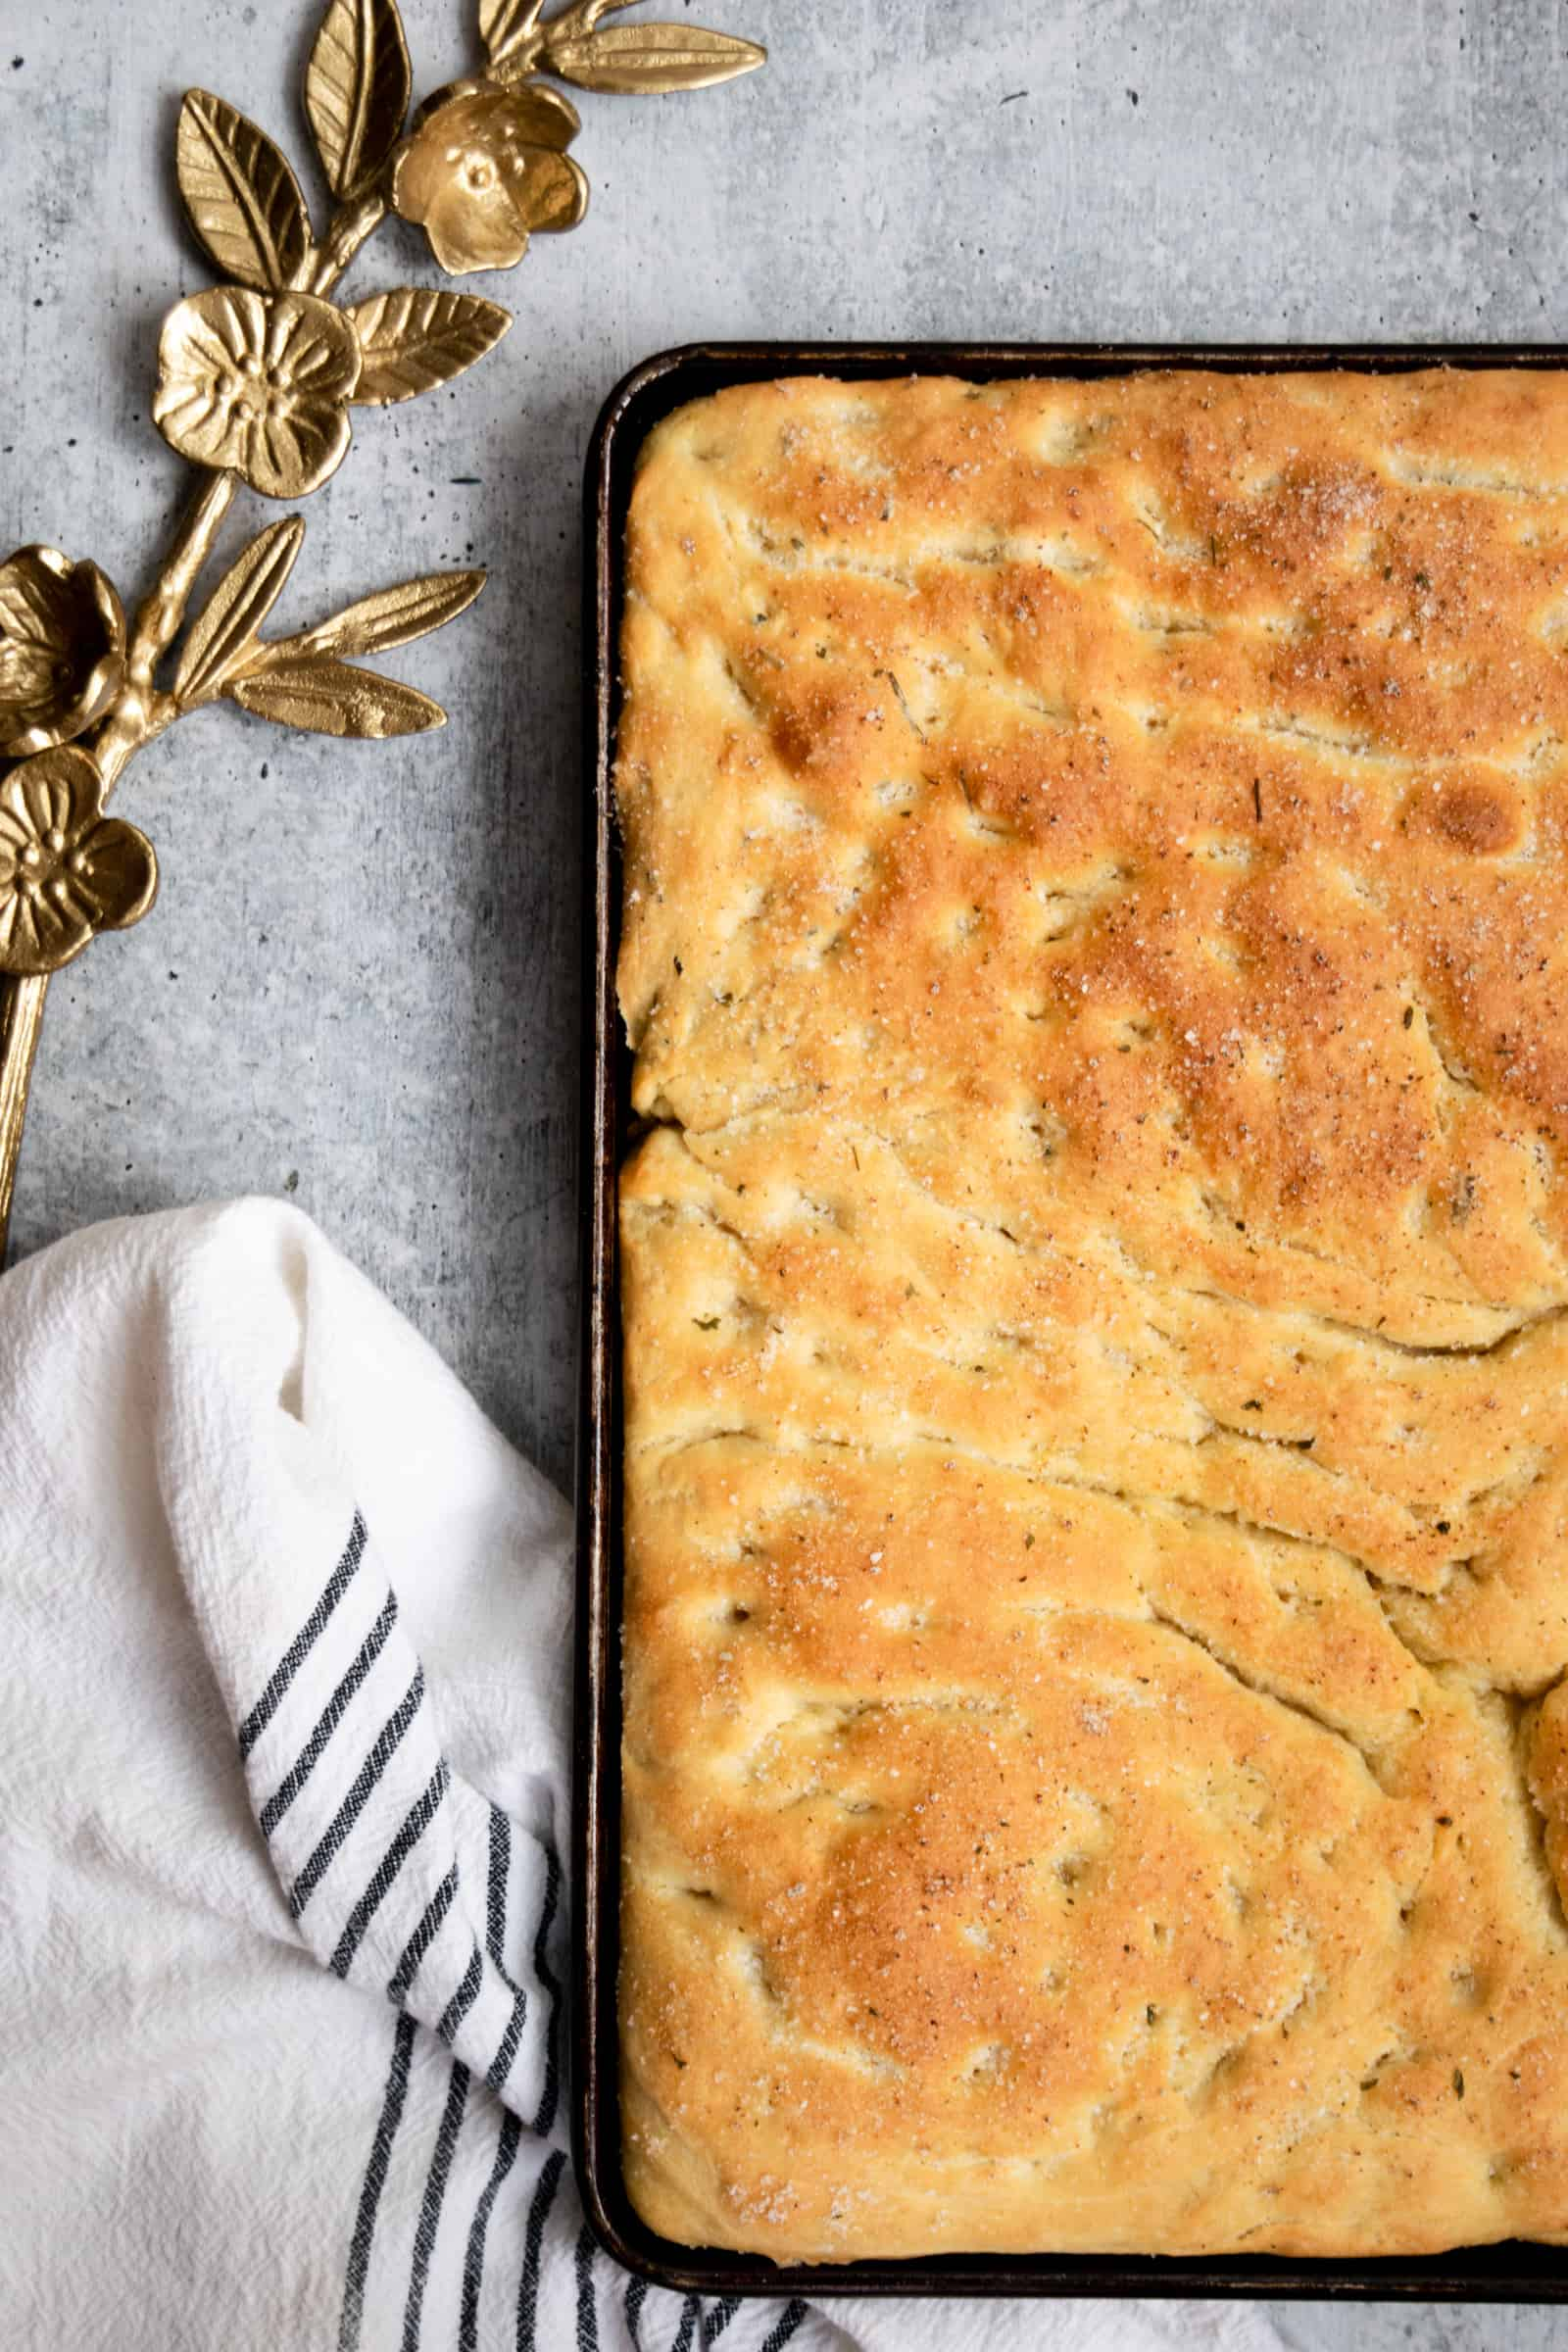 baked focaccia in a sheet pan resting on a black and white striped towel with gold vine accessory